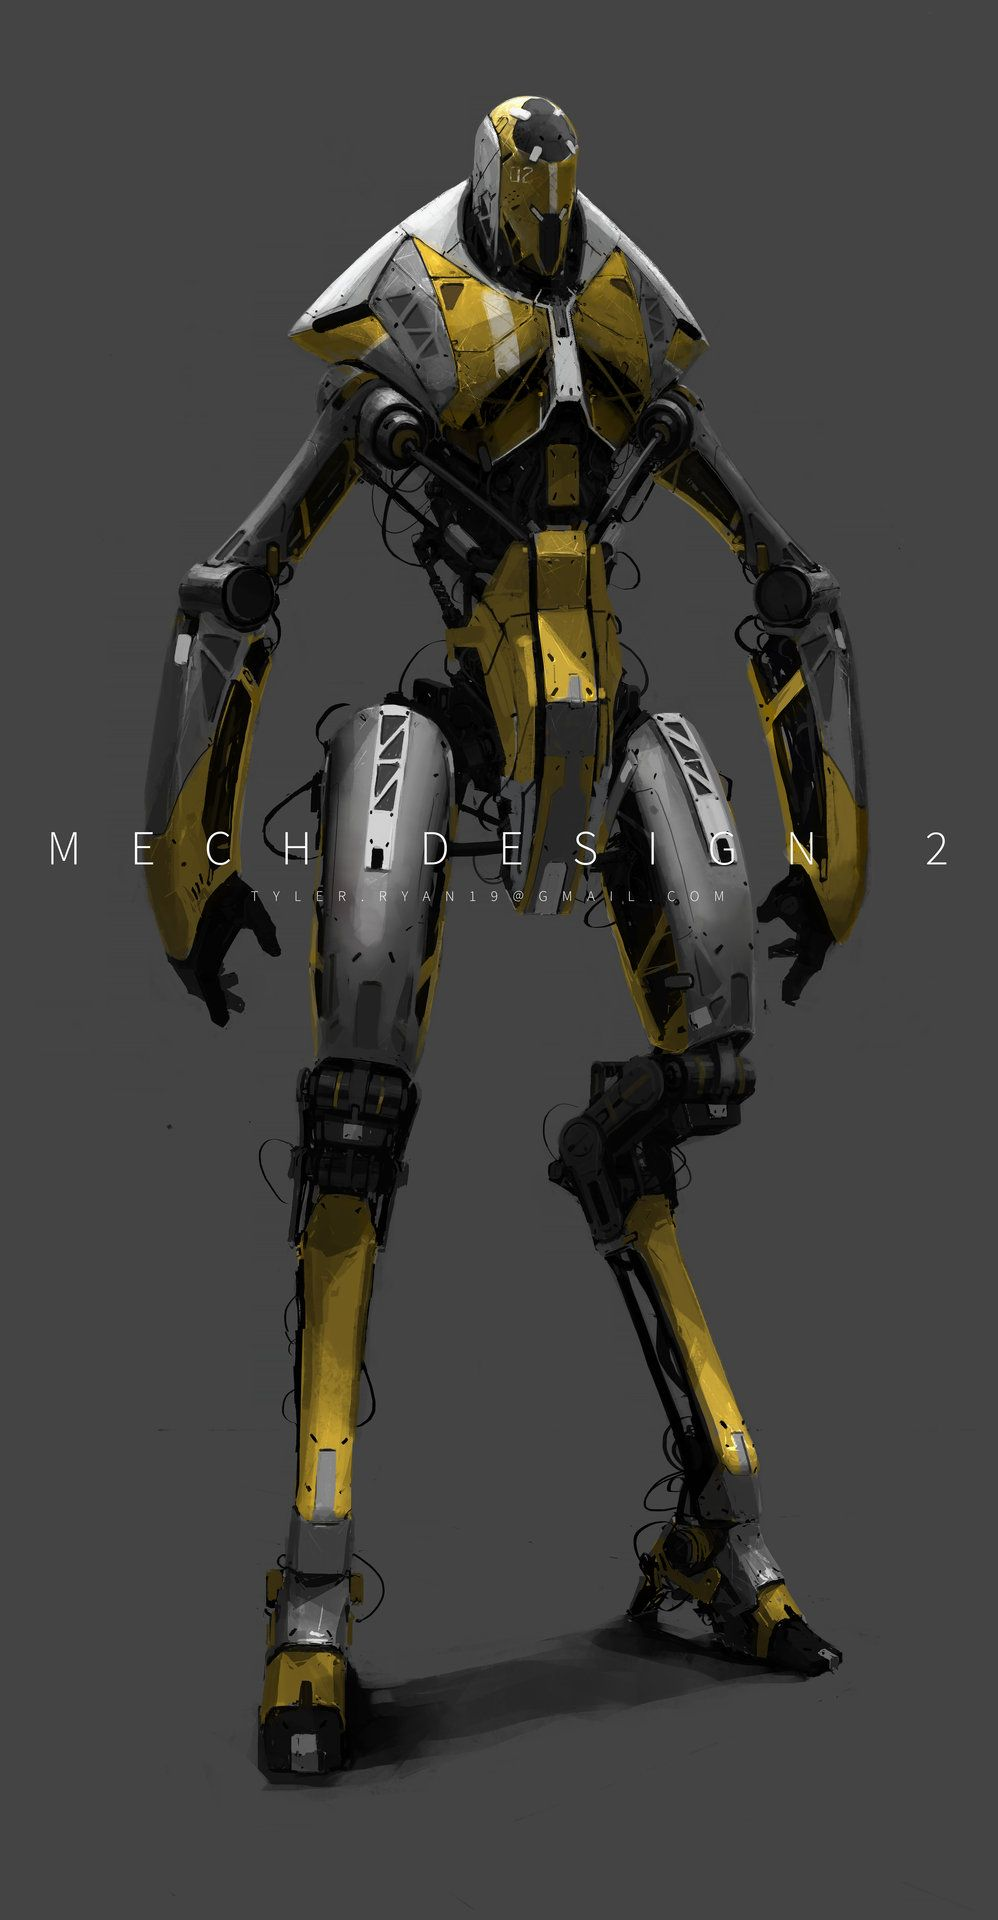 Artstation mech design 2 tyler ryan concept robots for Sci fi decor